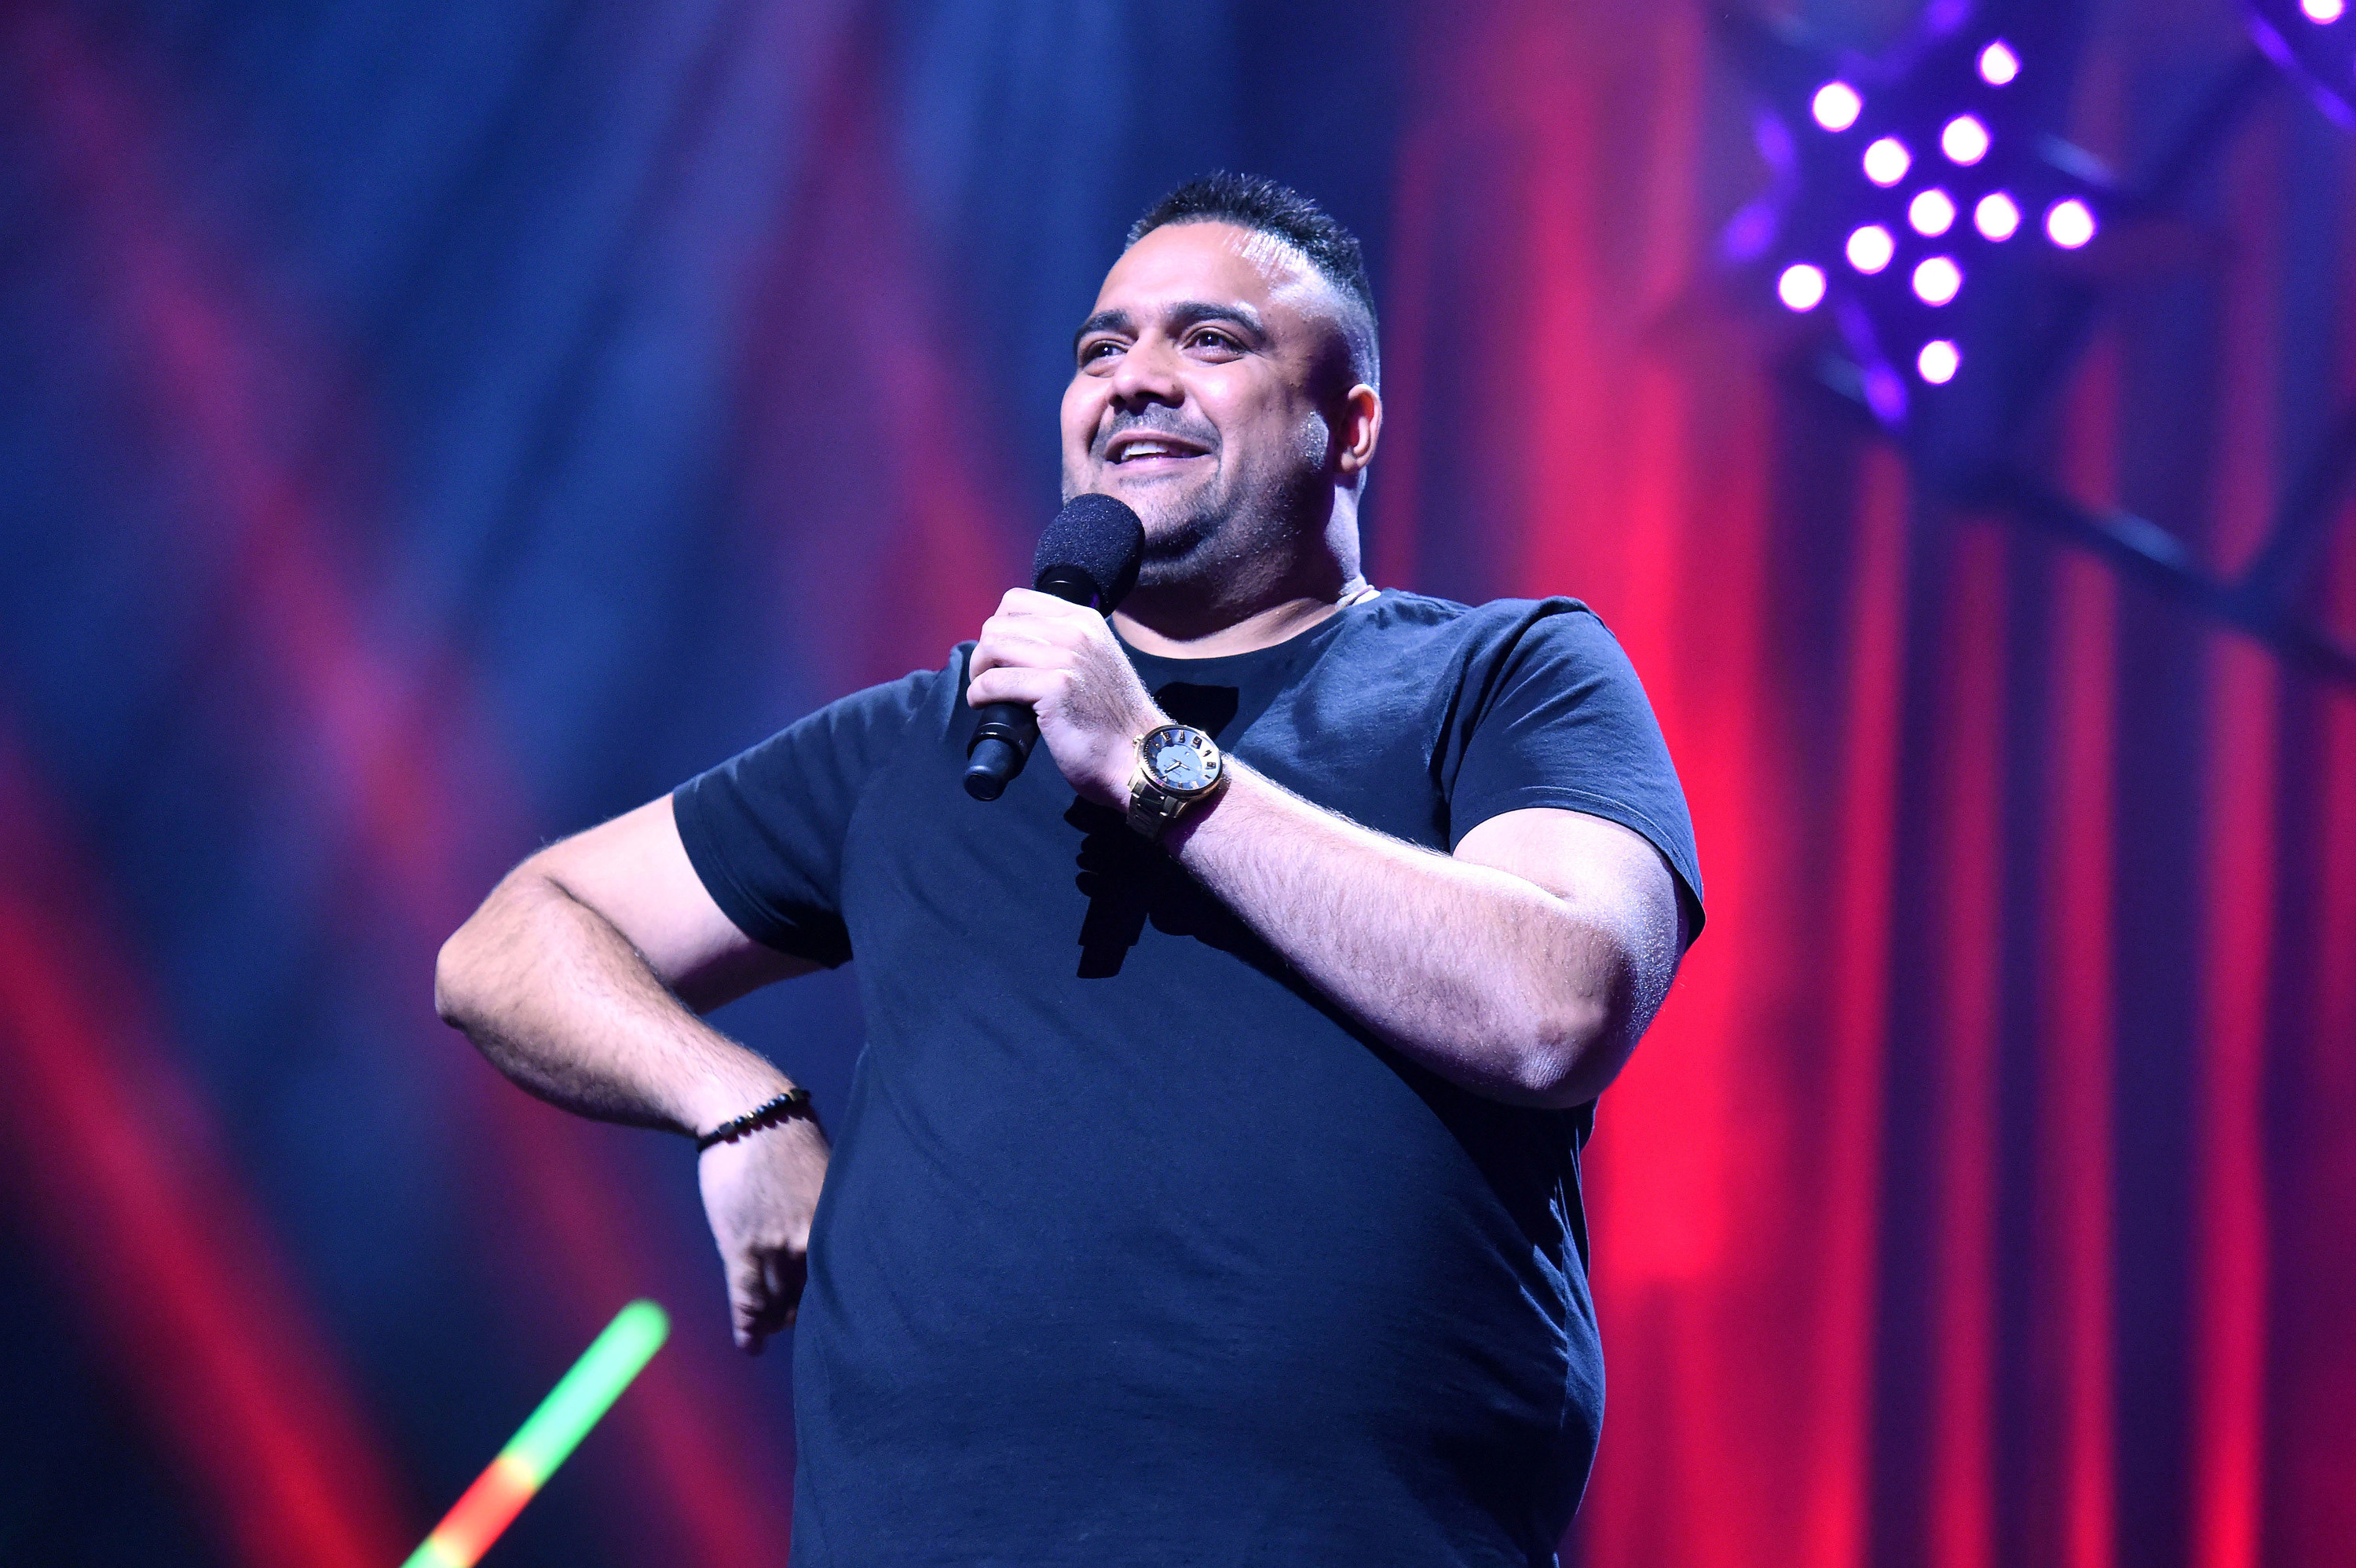 Comedian Dane Simpson performing on stage